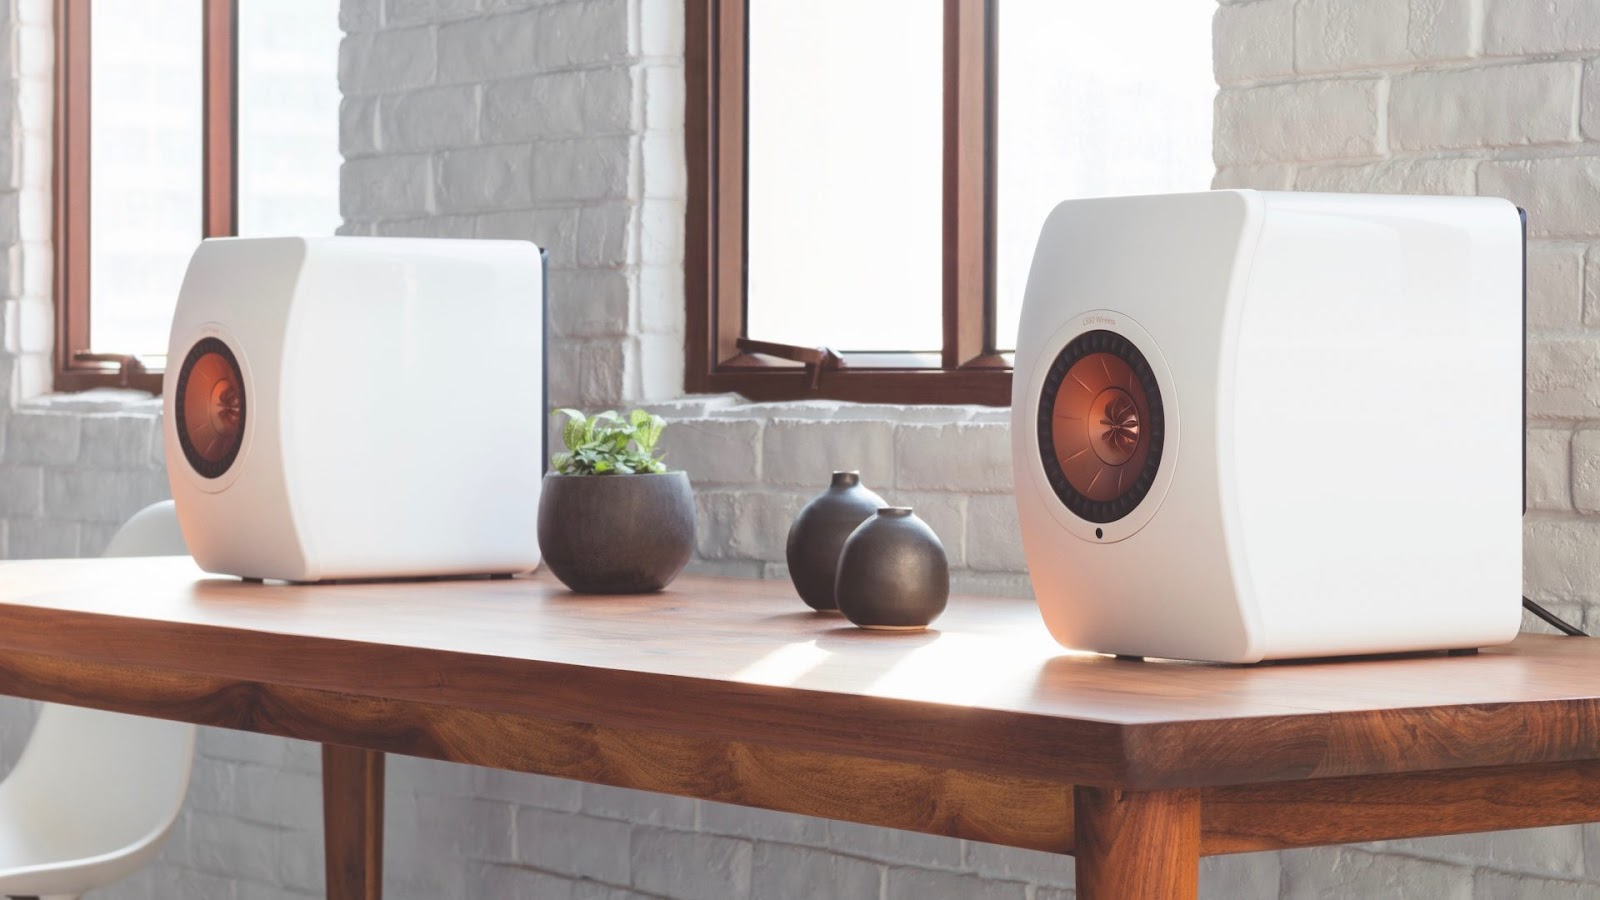 A pair of glossy white KEF LS50 speakers placed on a wooden table in the living room